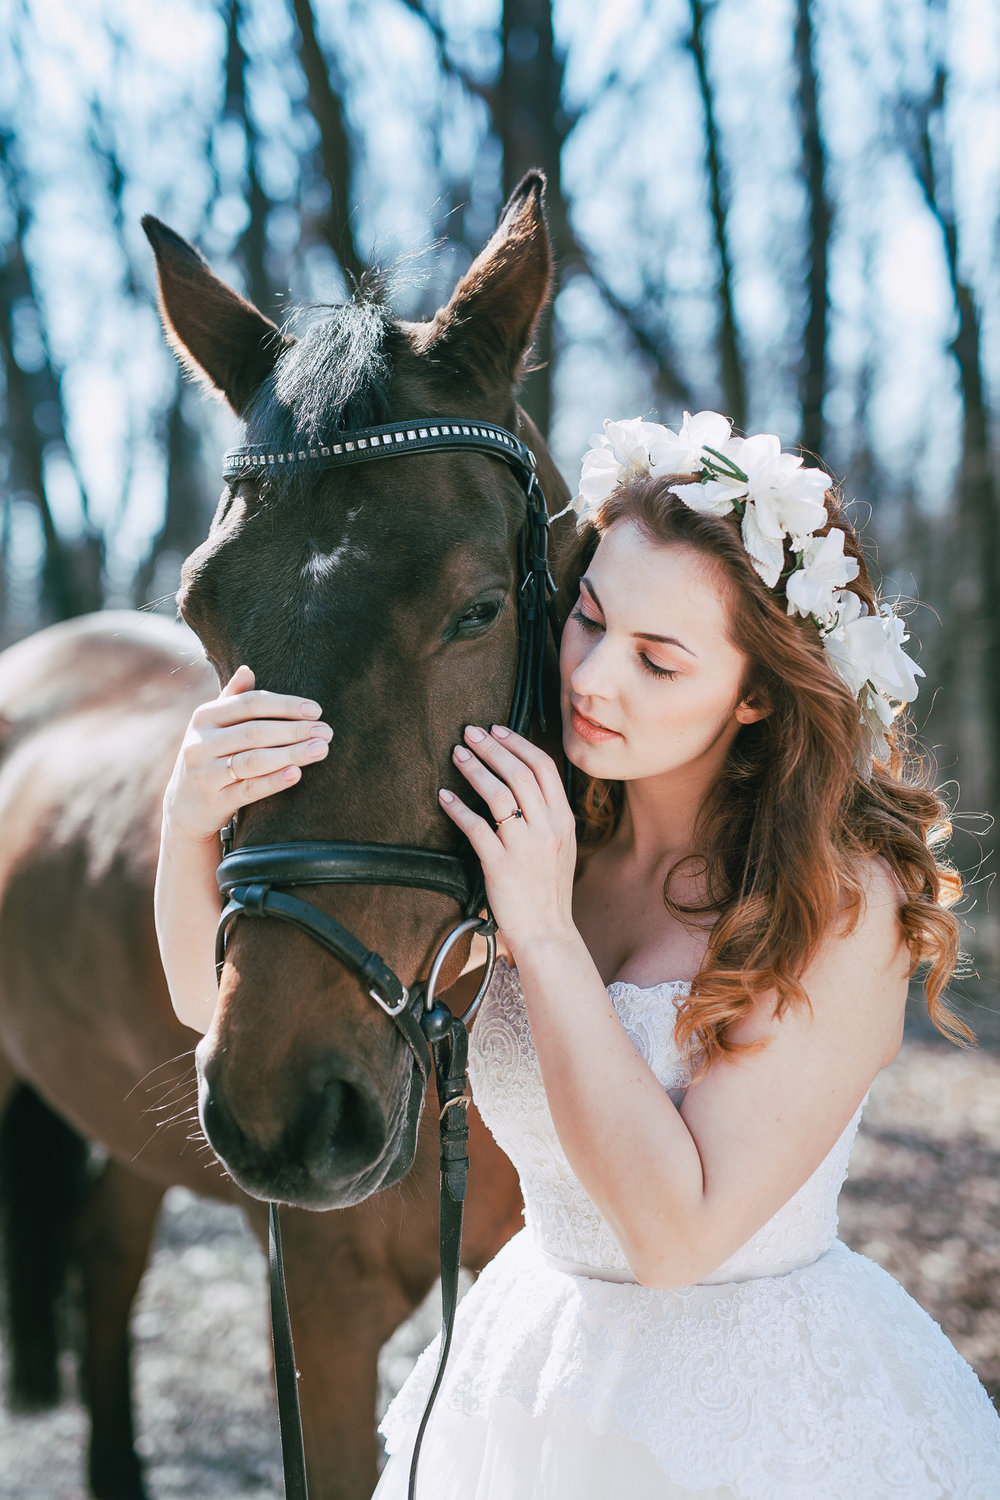 Bridal styled shoot with a horse Metamorphoses by destination wedding planner High Emotion Weddings near Vienna Austria